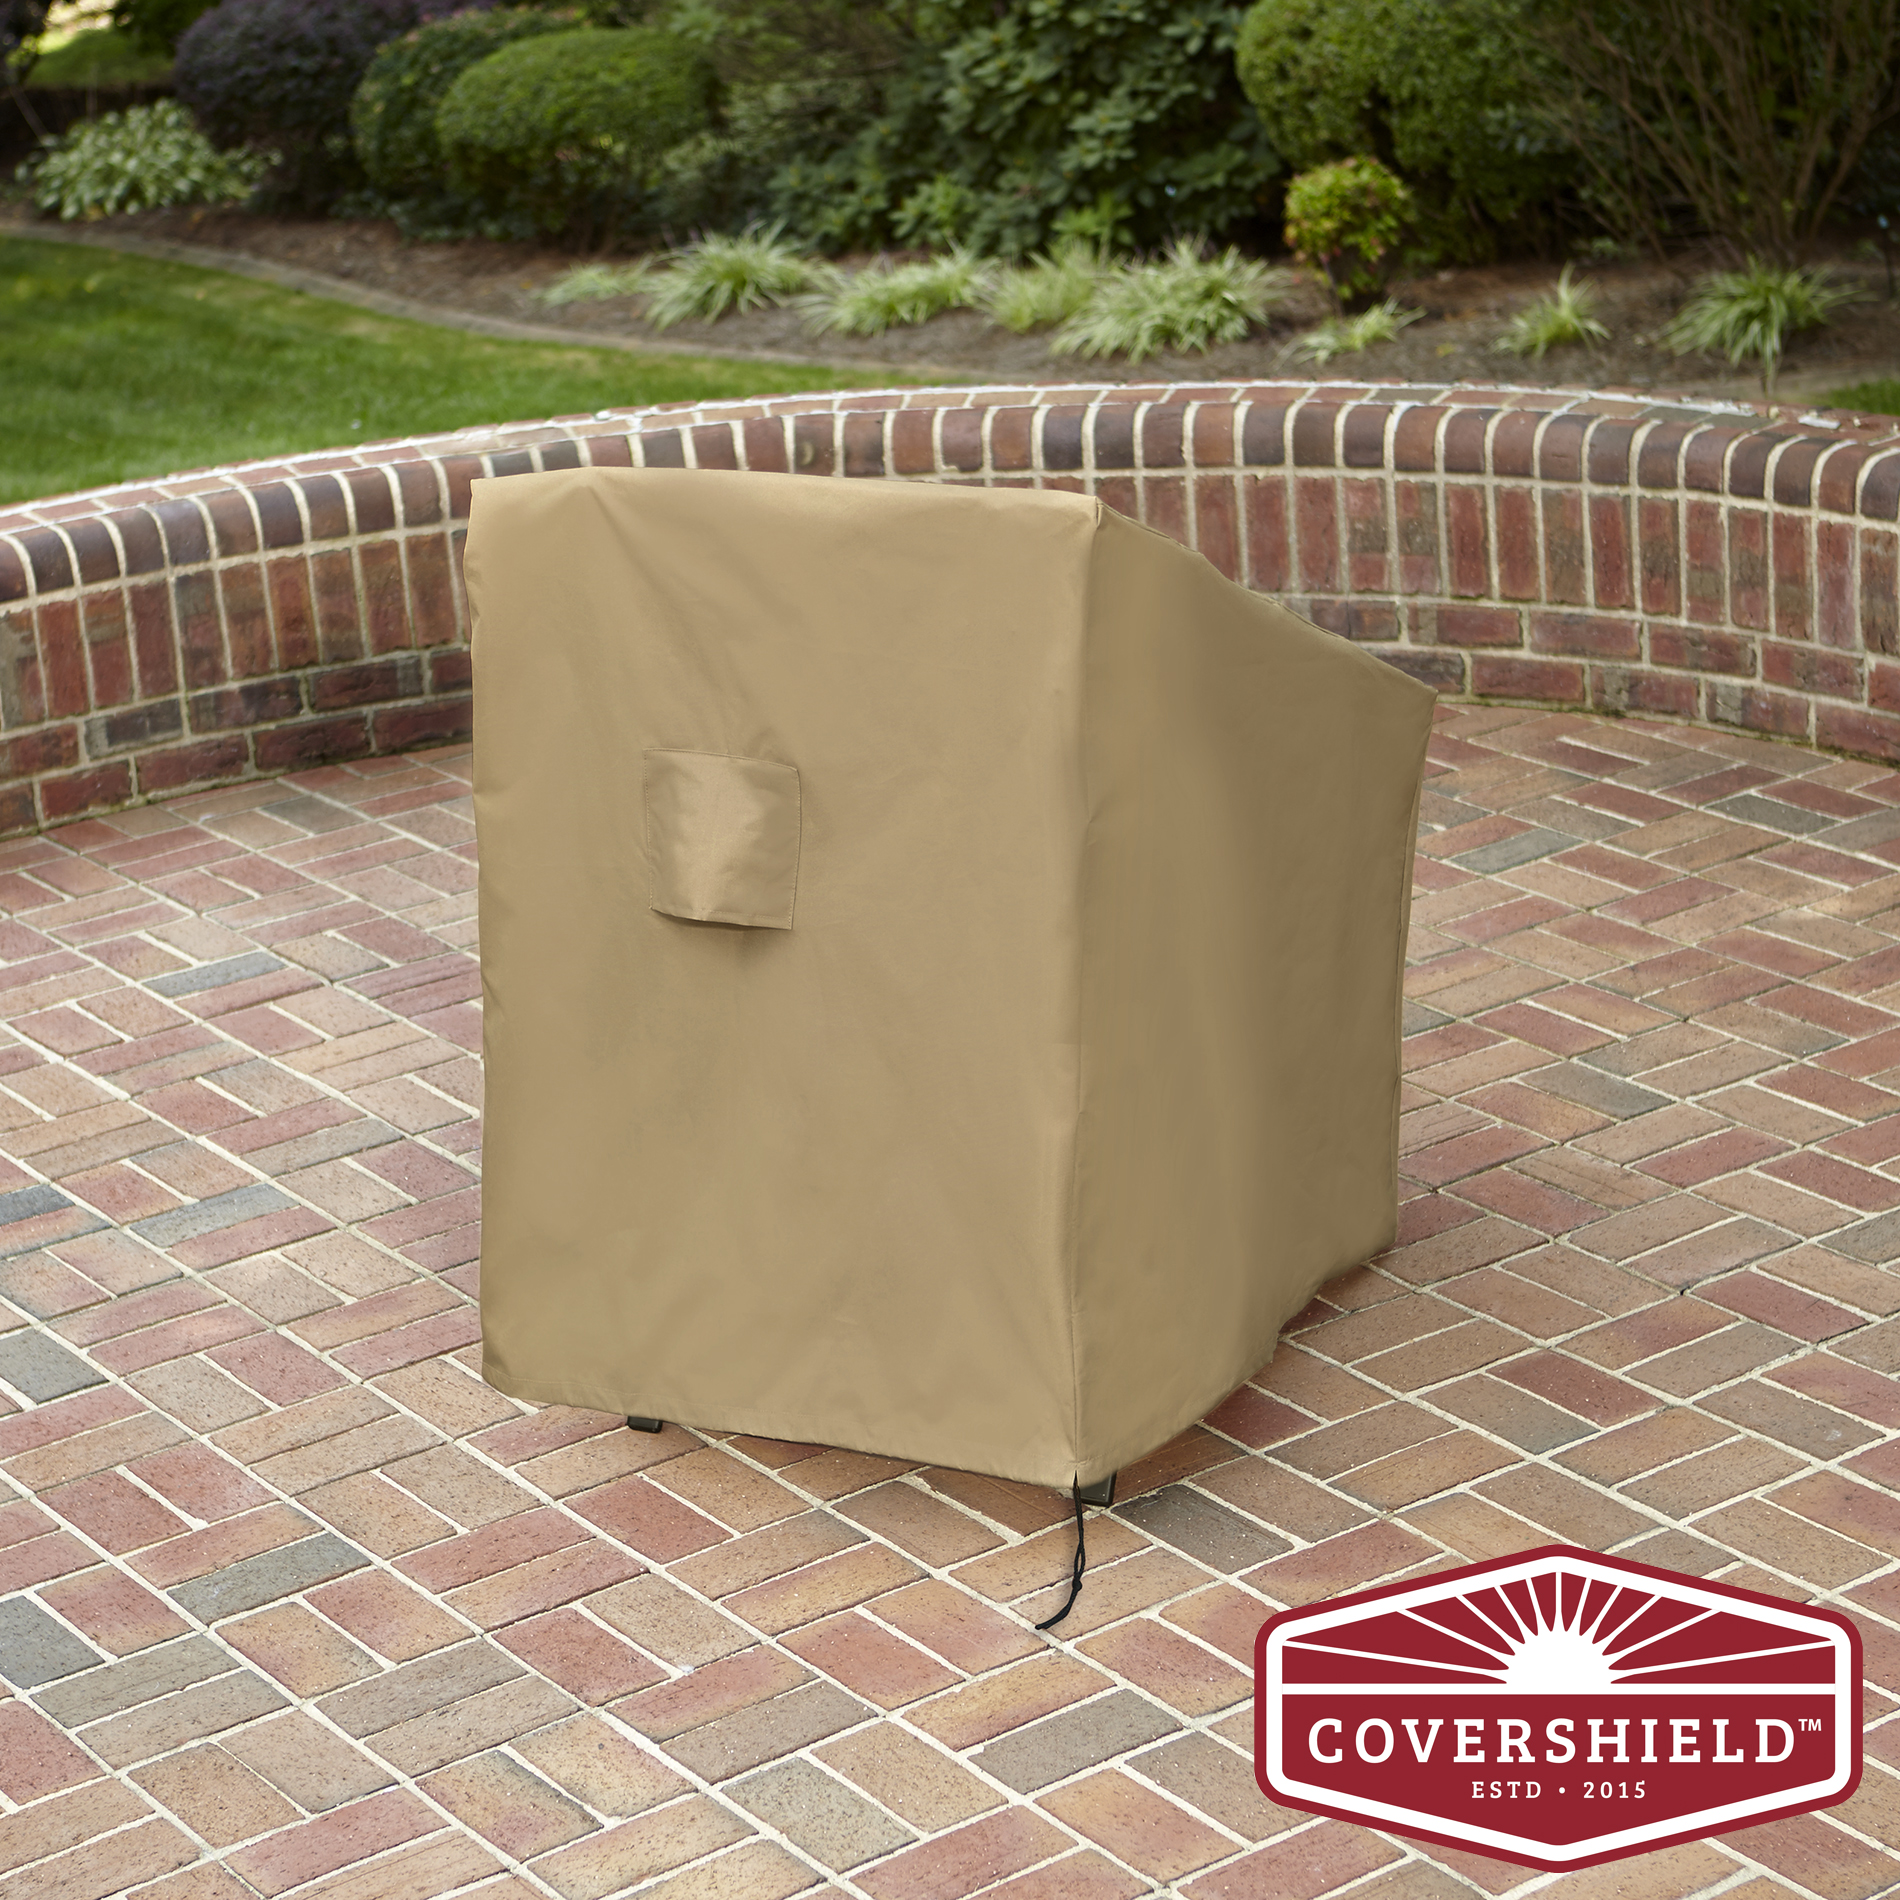 CoverShield StackBar Chair Patio Furniture Cover Deluxe